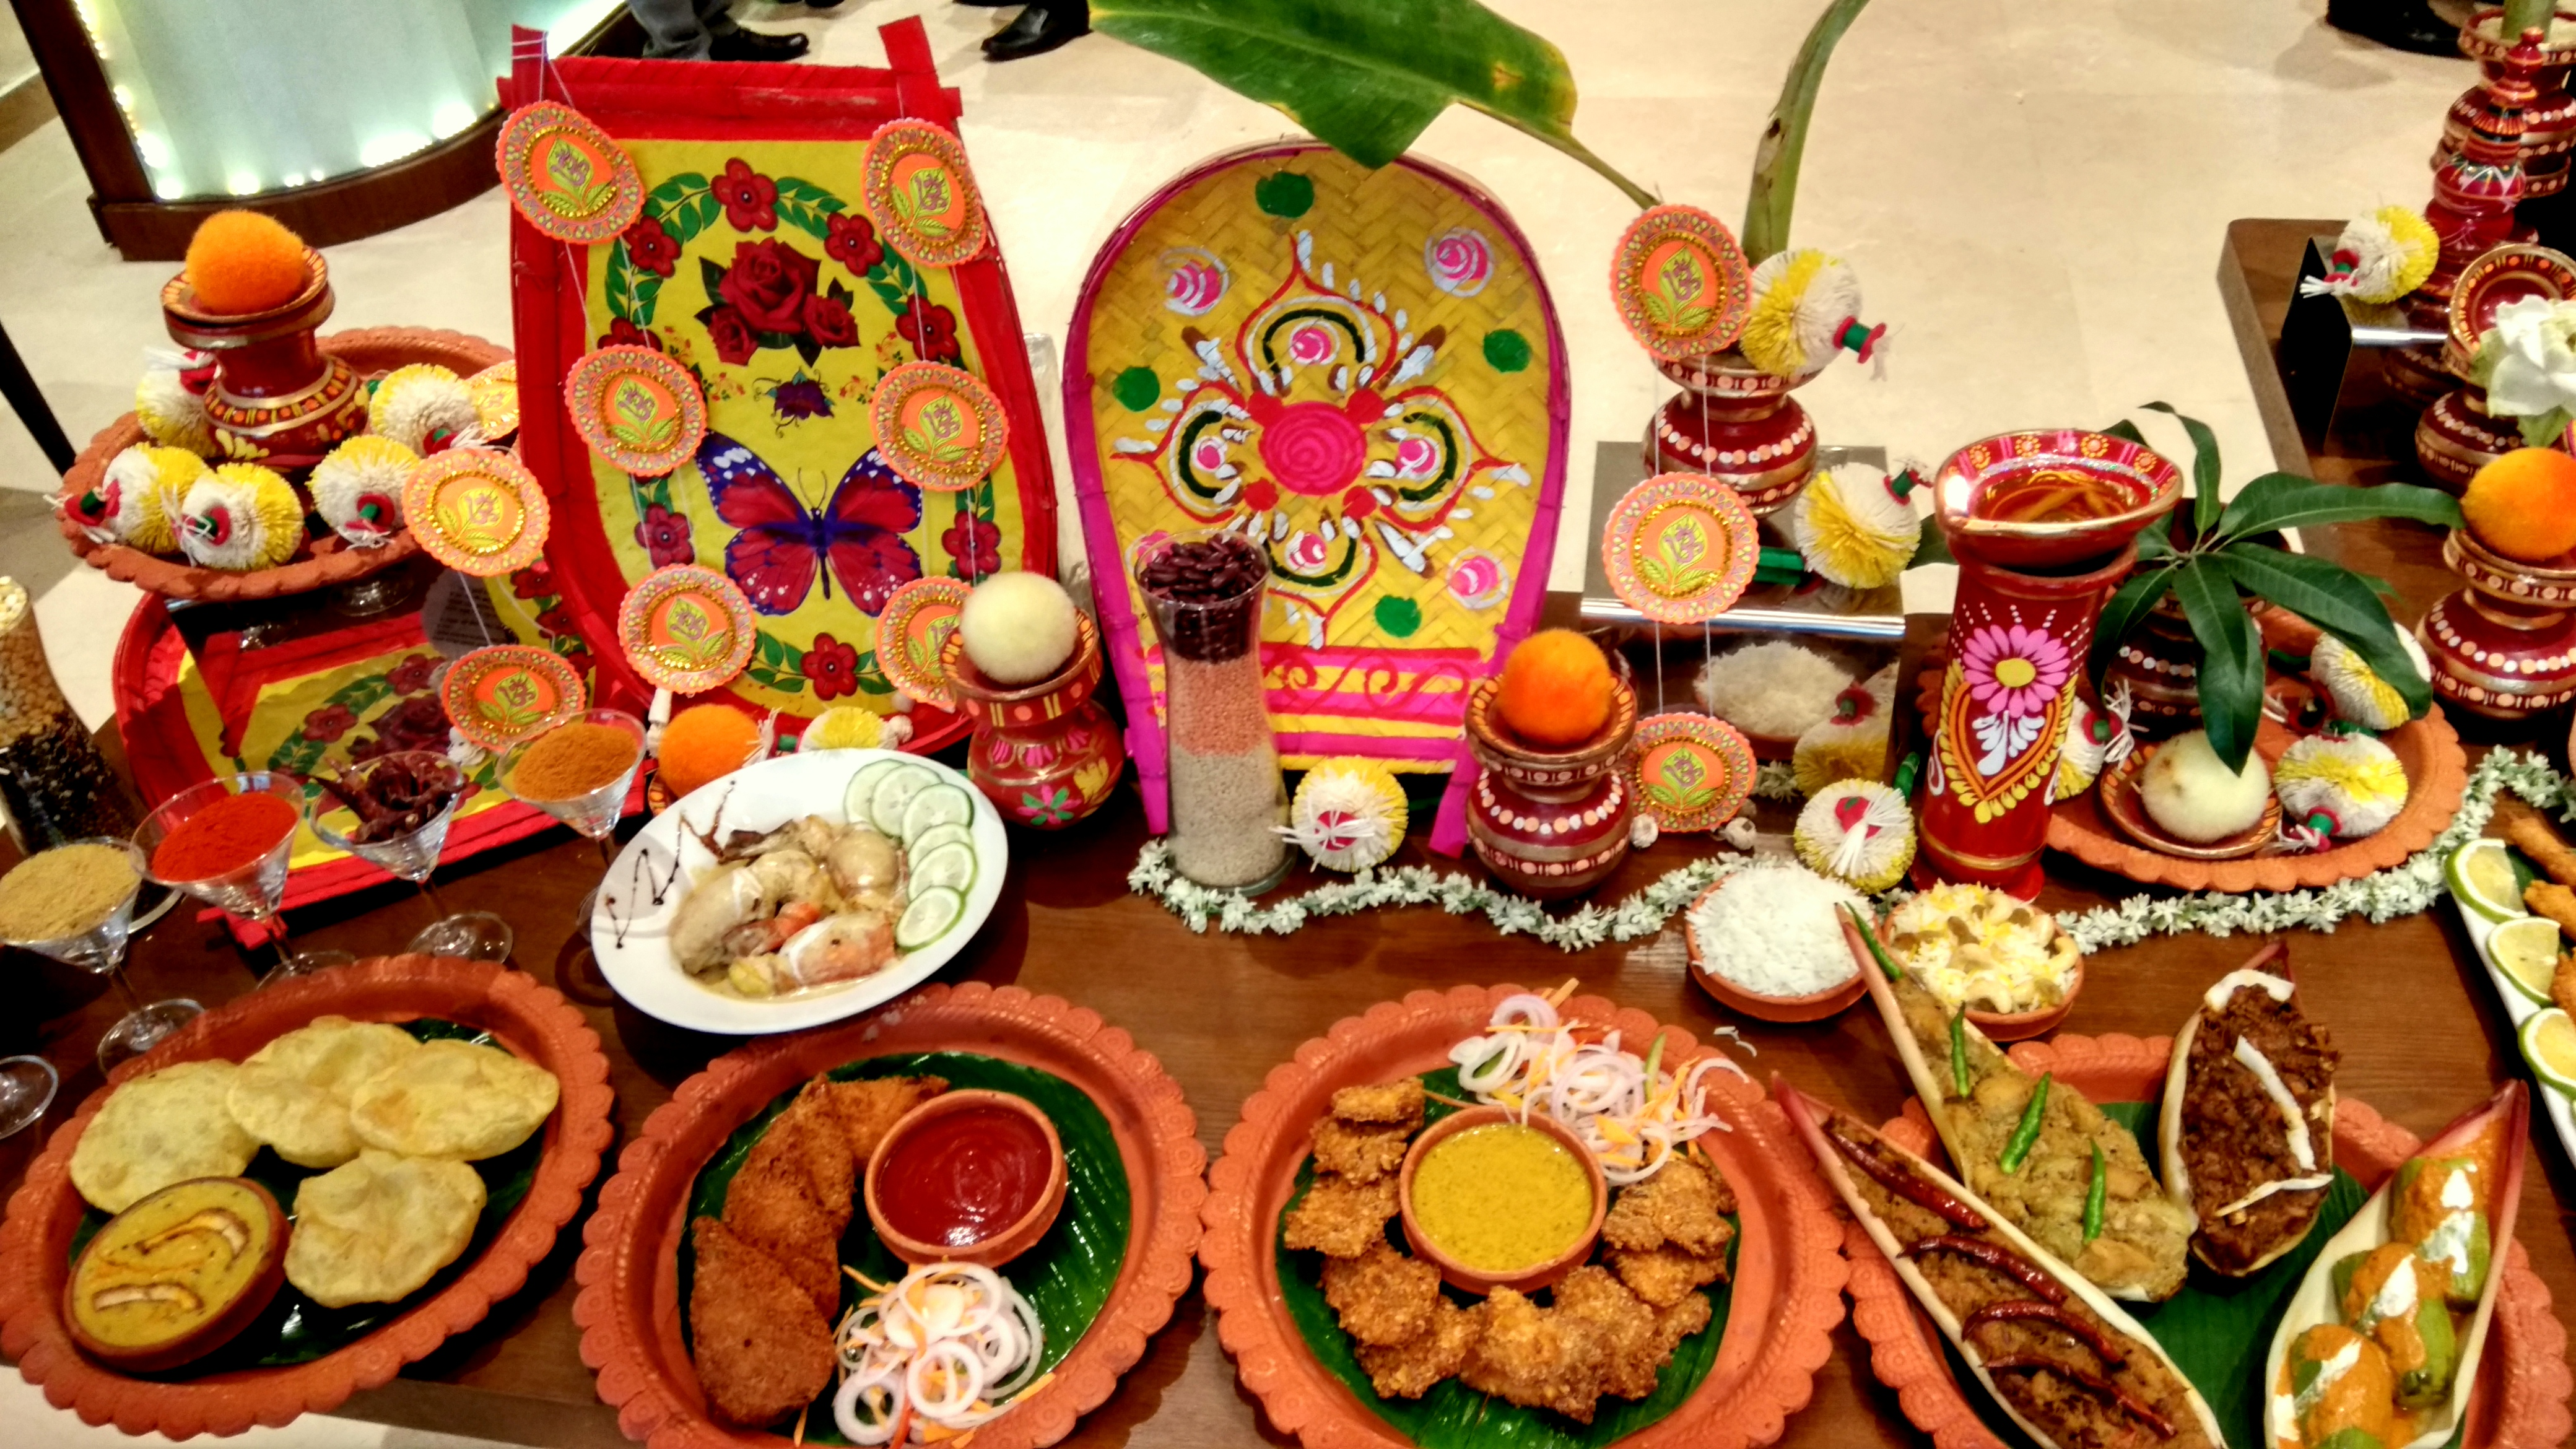 Enjoy A Special Menu in This Durga Puja with La Fiesta Catering